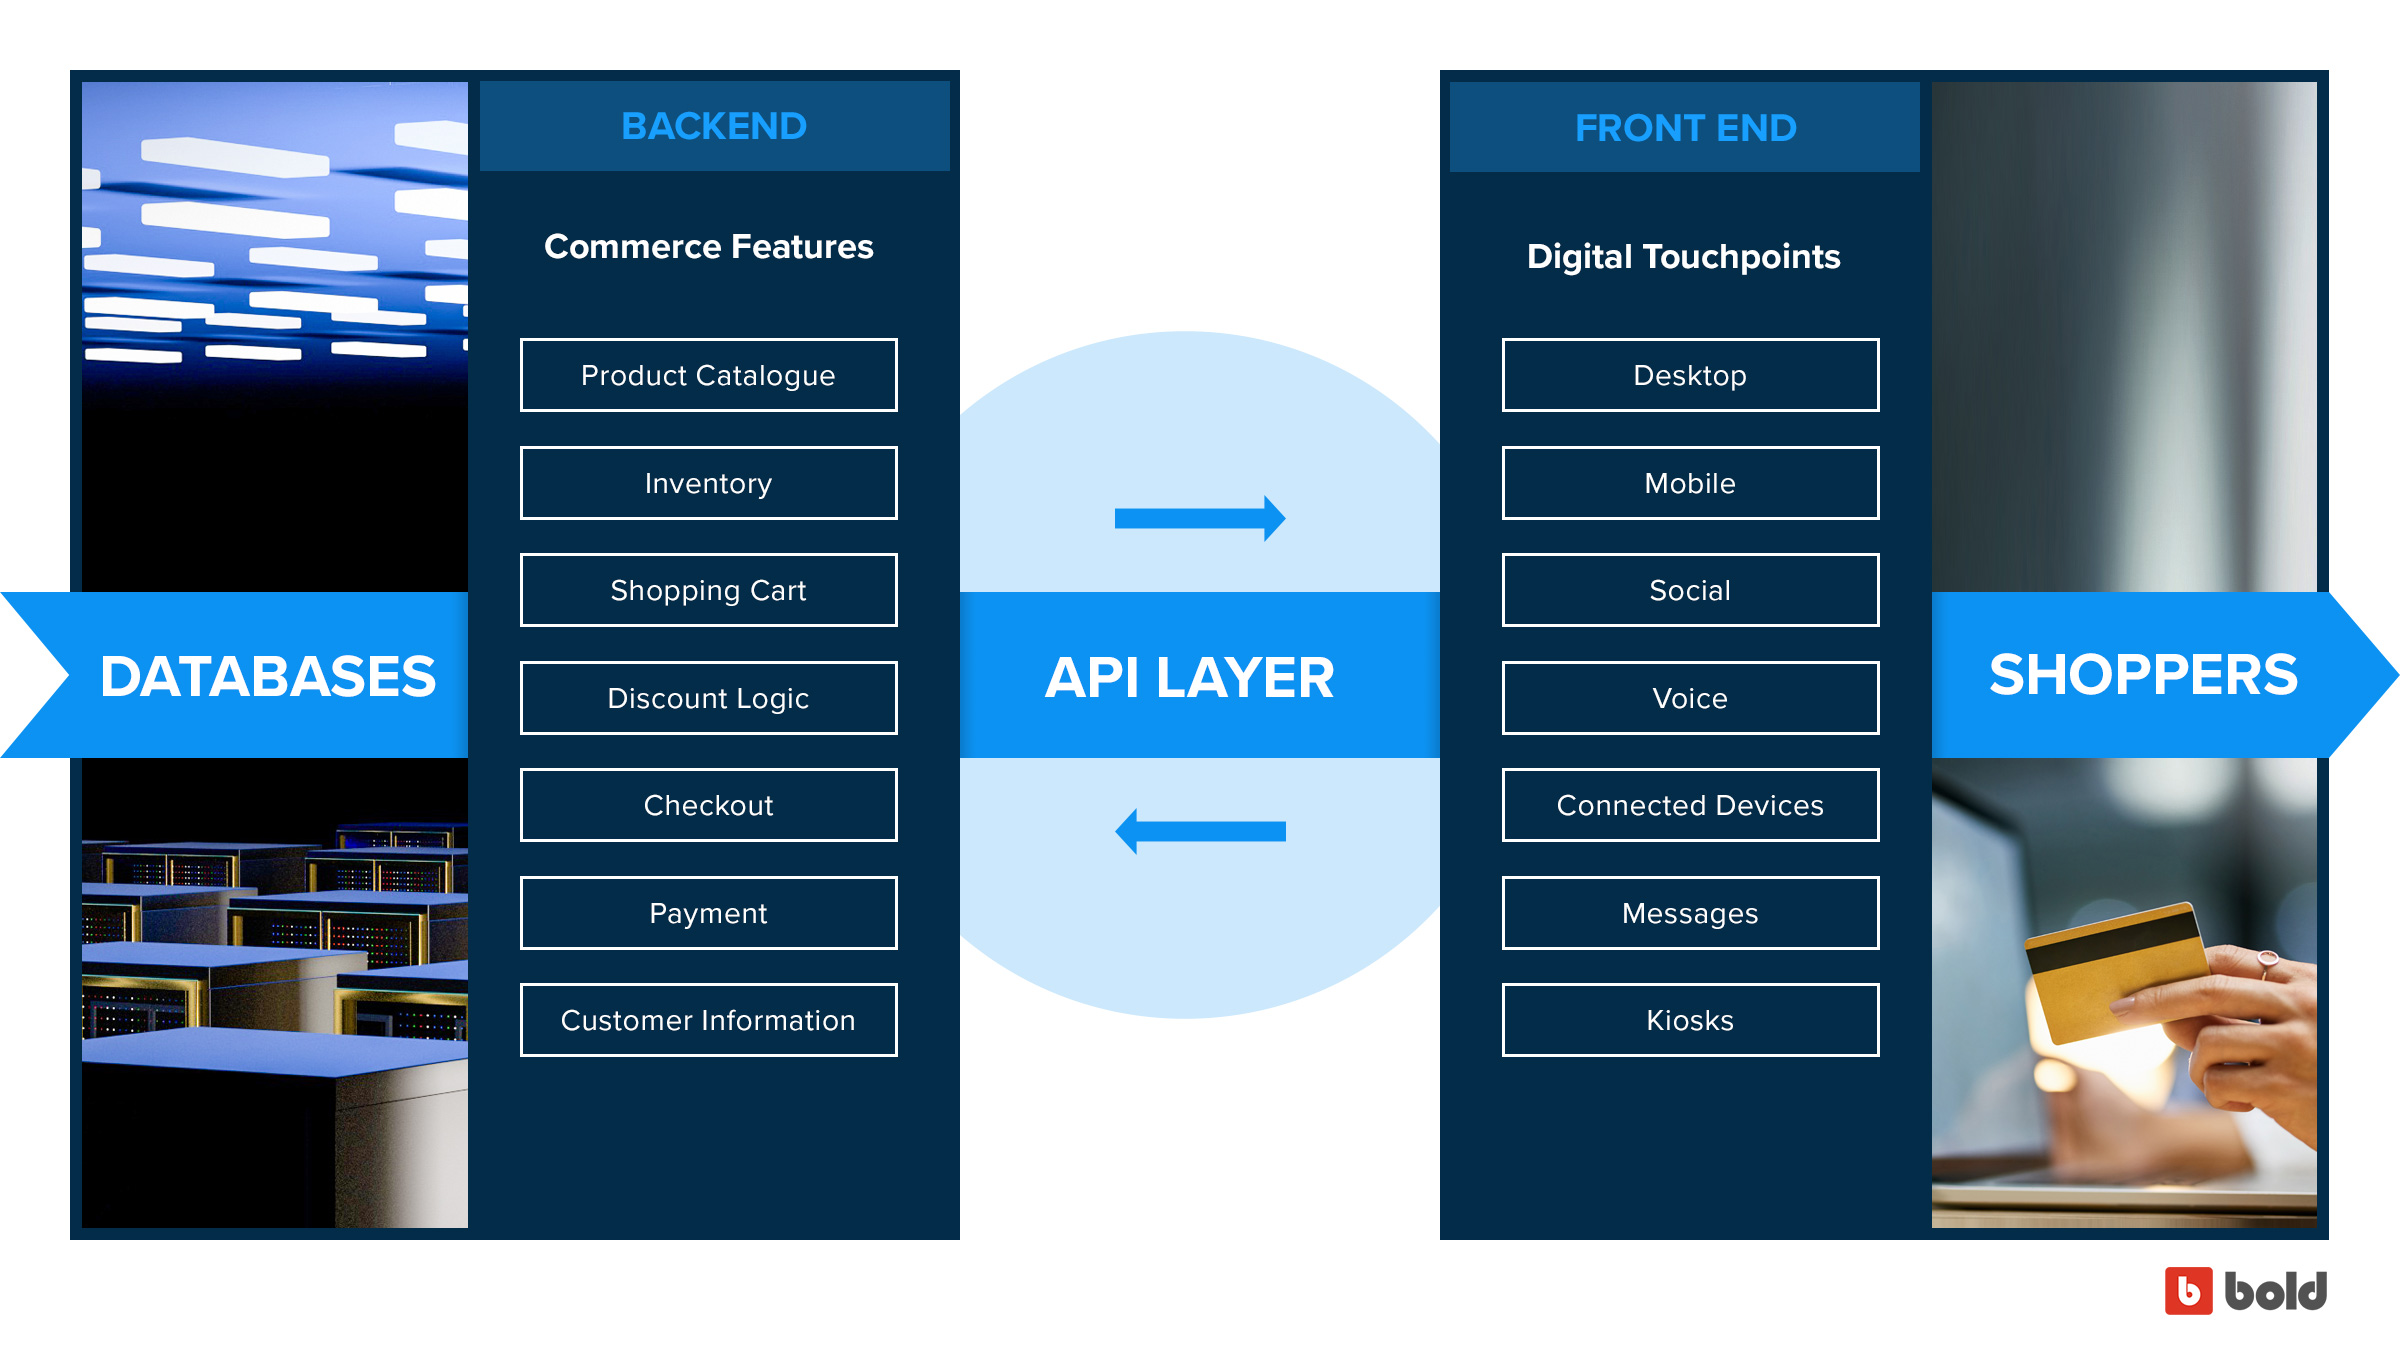 Bold graphic showing decoupled frontend and backend in headless commerce architecture